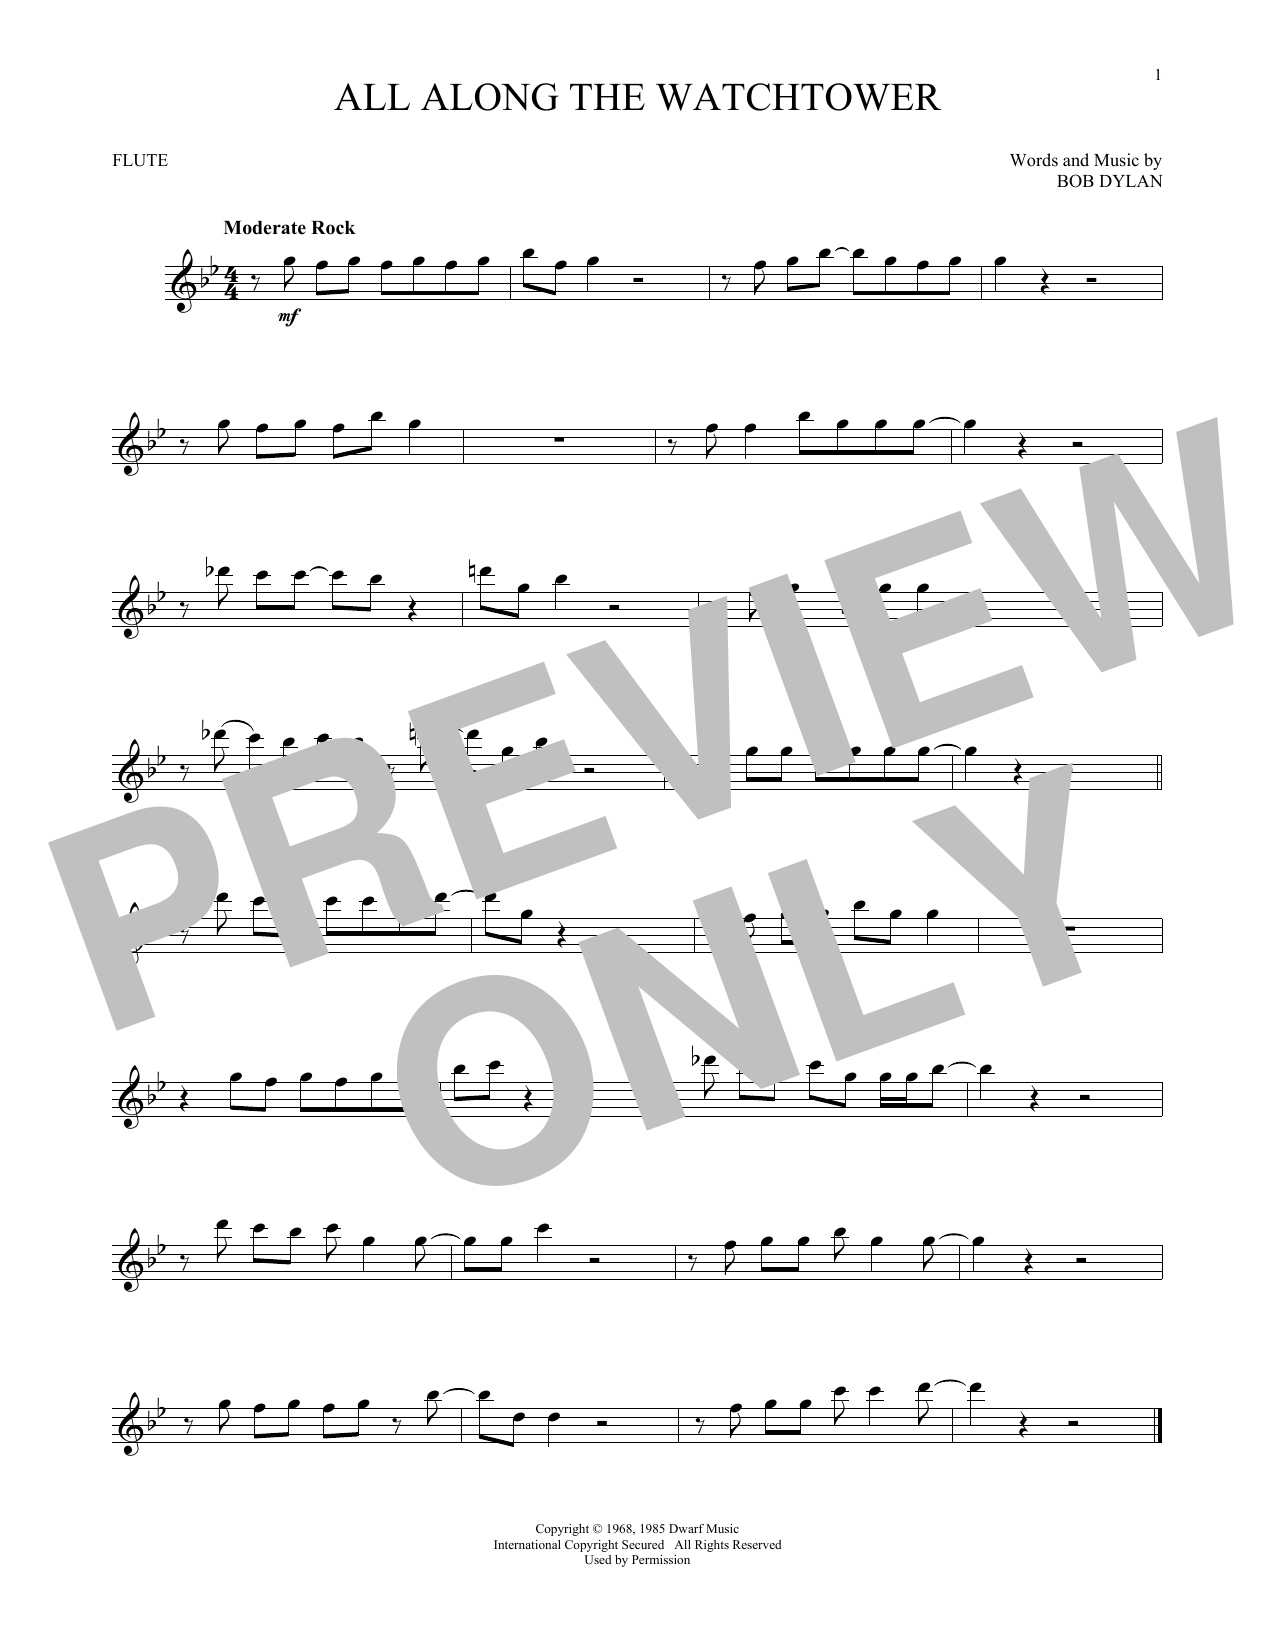 All Along The Watchtower (Flute Solo)